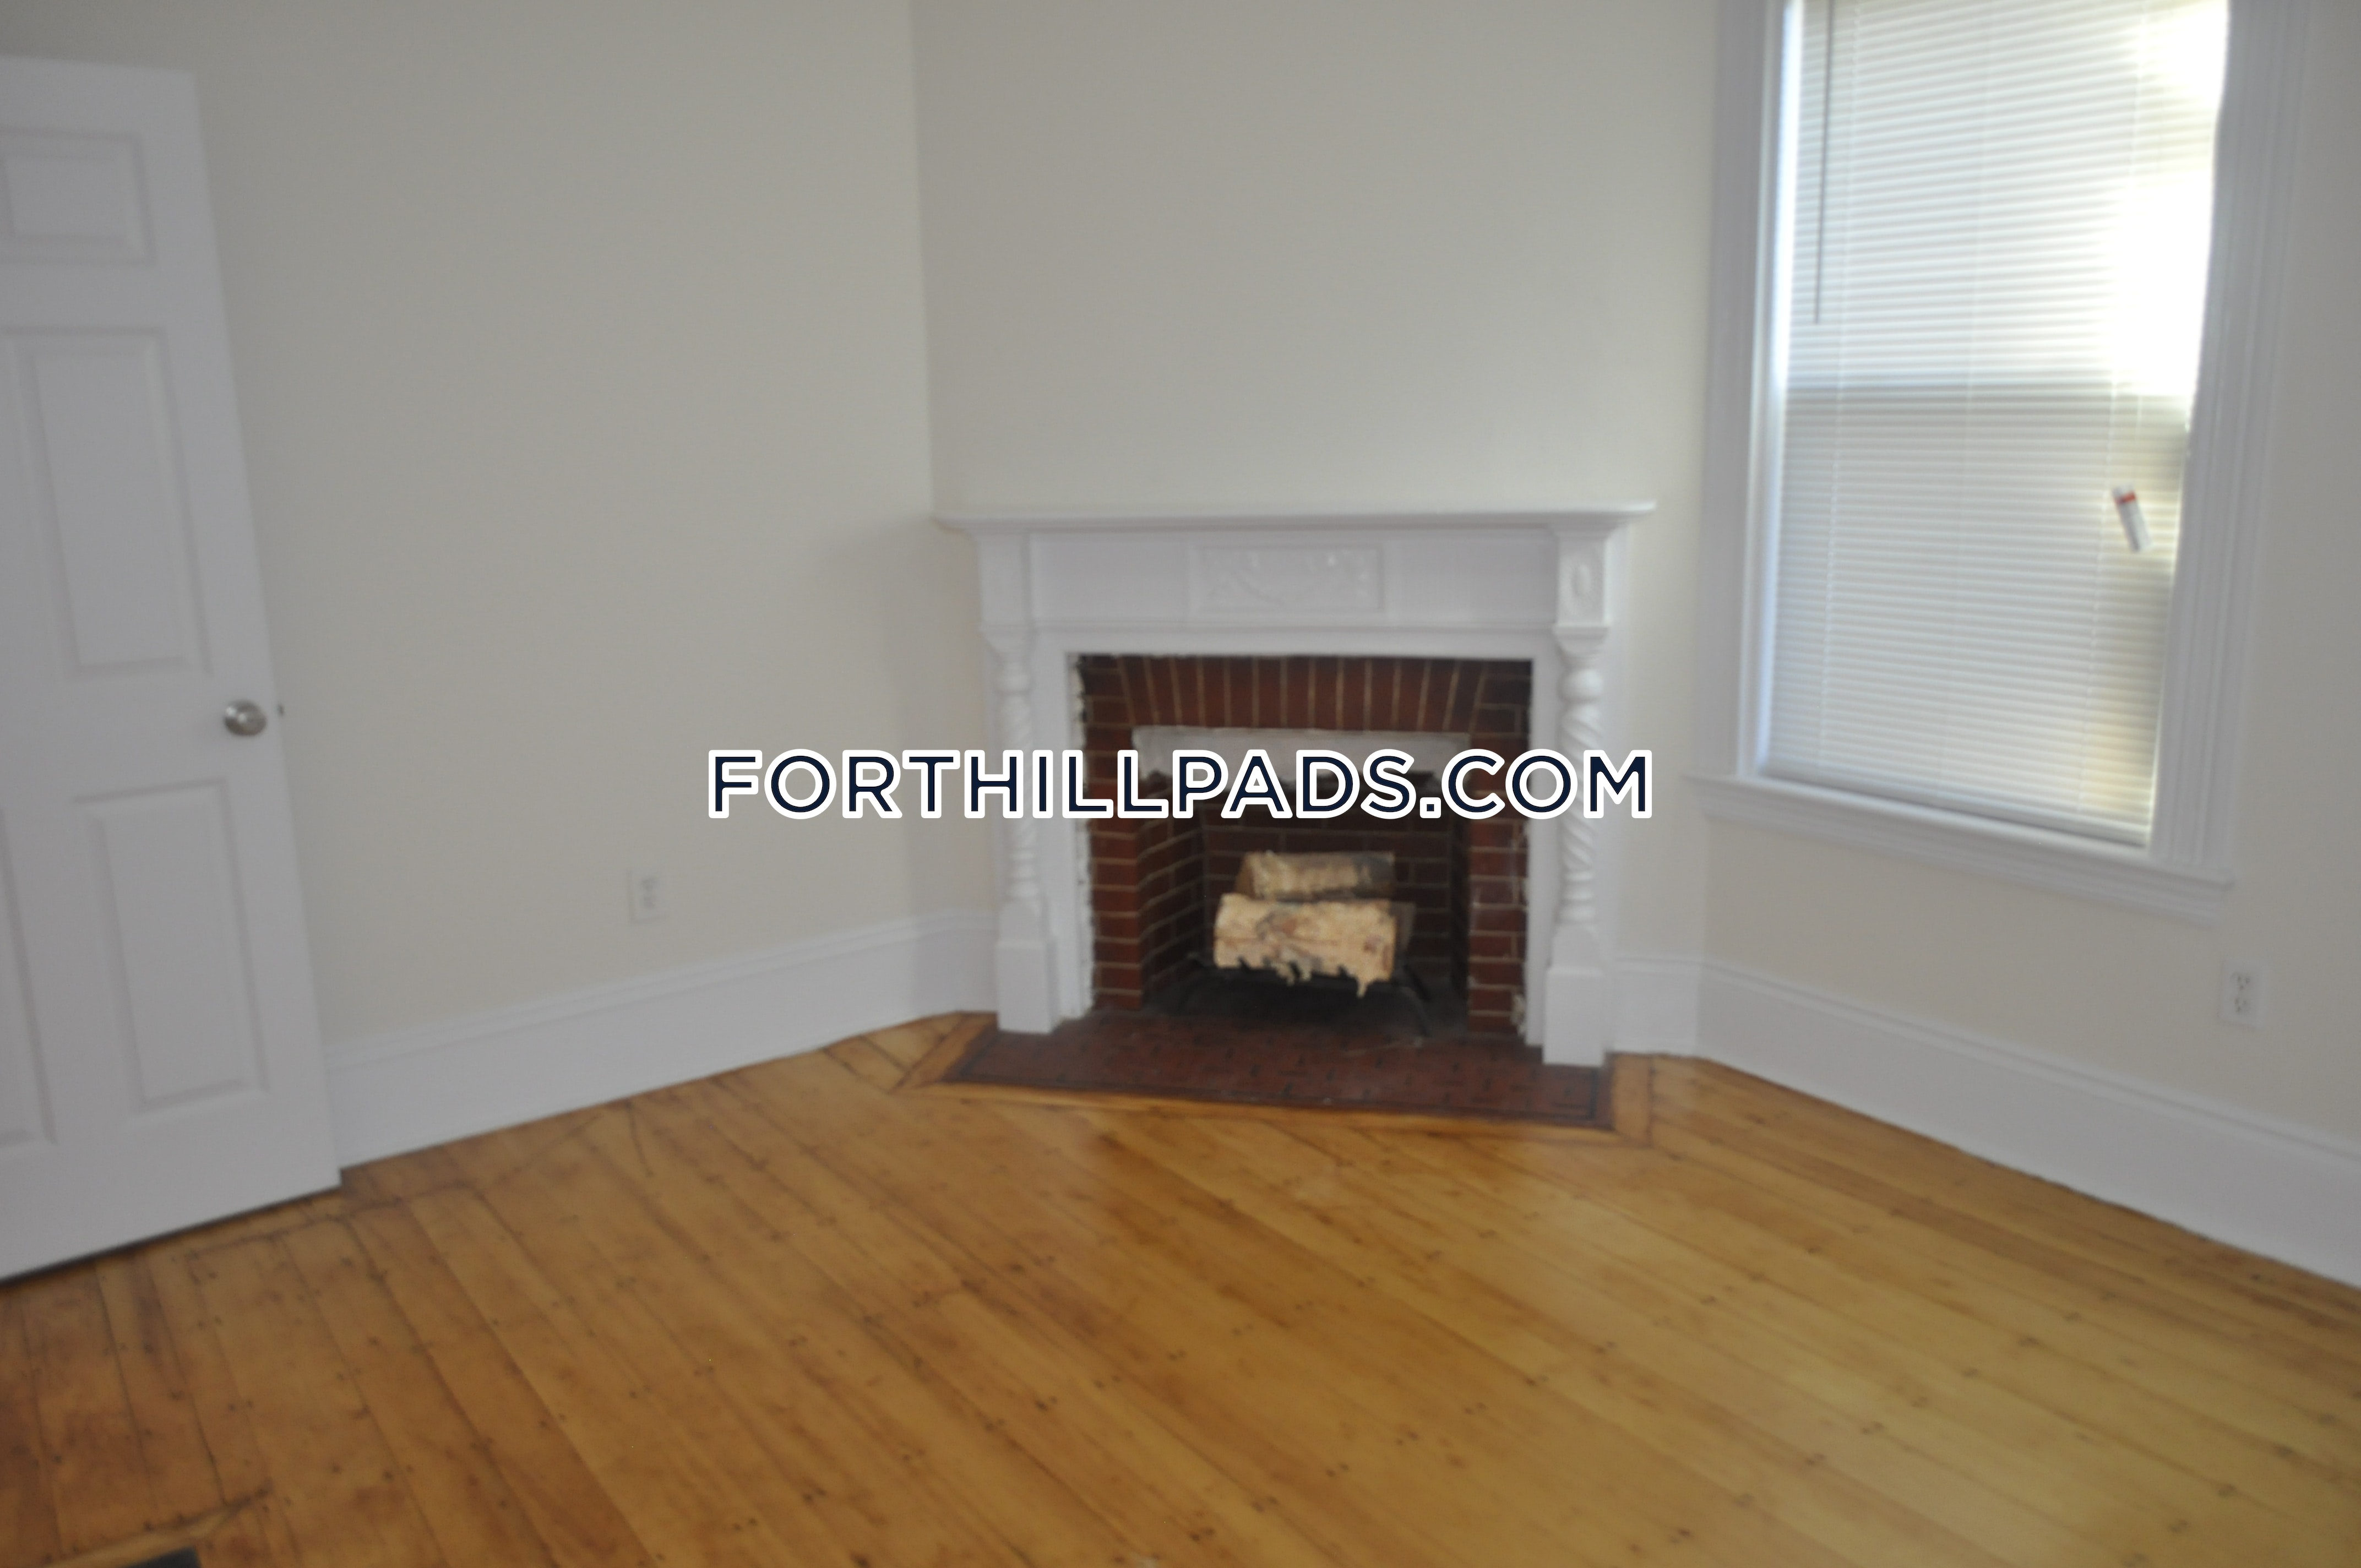 4 Beds 2 Baths - Boston - Fort Hill $3,200